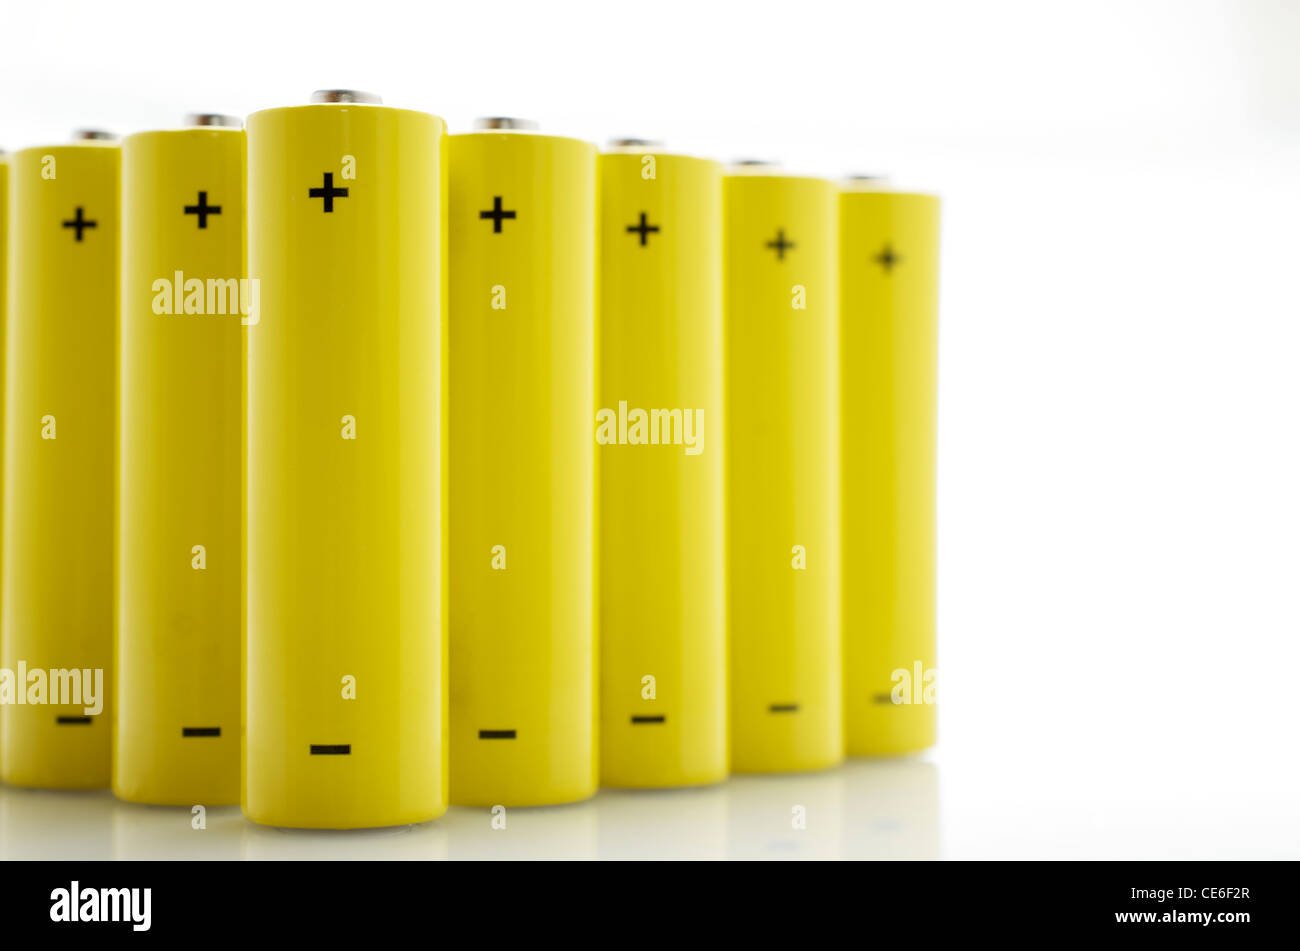 set of AA batteries lined up on a white background - Stock Image